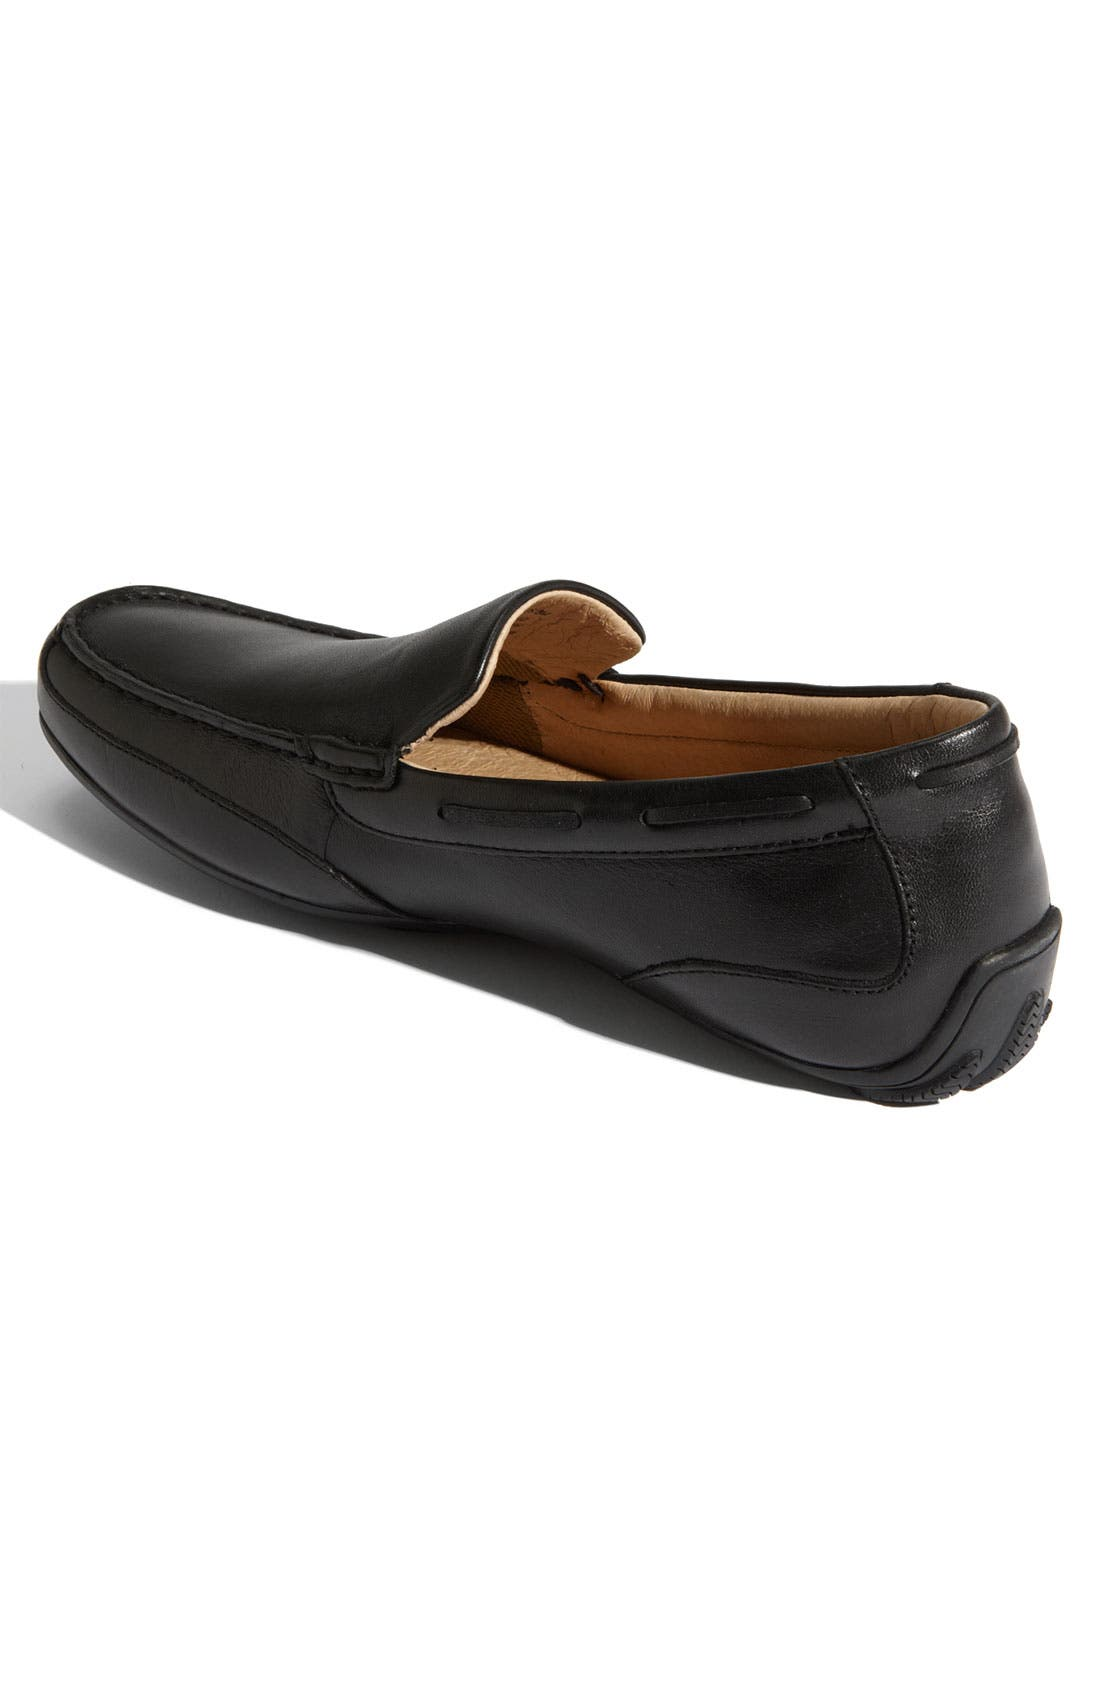 Top-Sider<sup>®</sup> 'Navigator Venetian' Driving Shoe,                             Alternate thumbnail 3, color,                             001